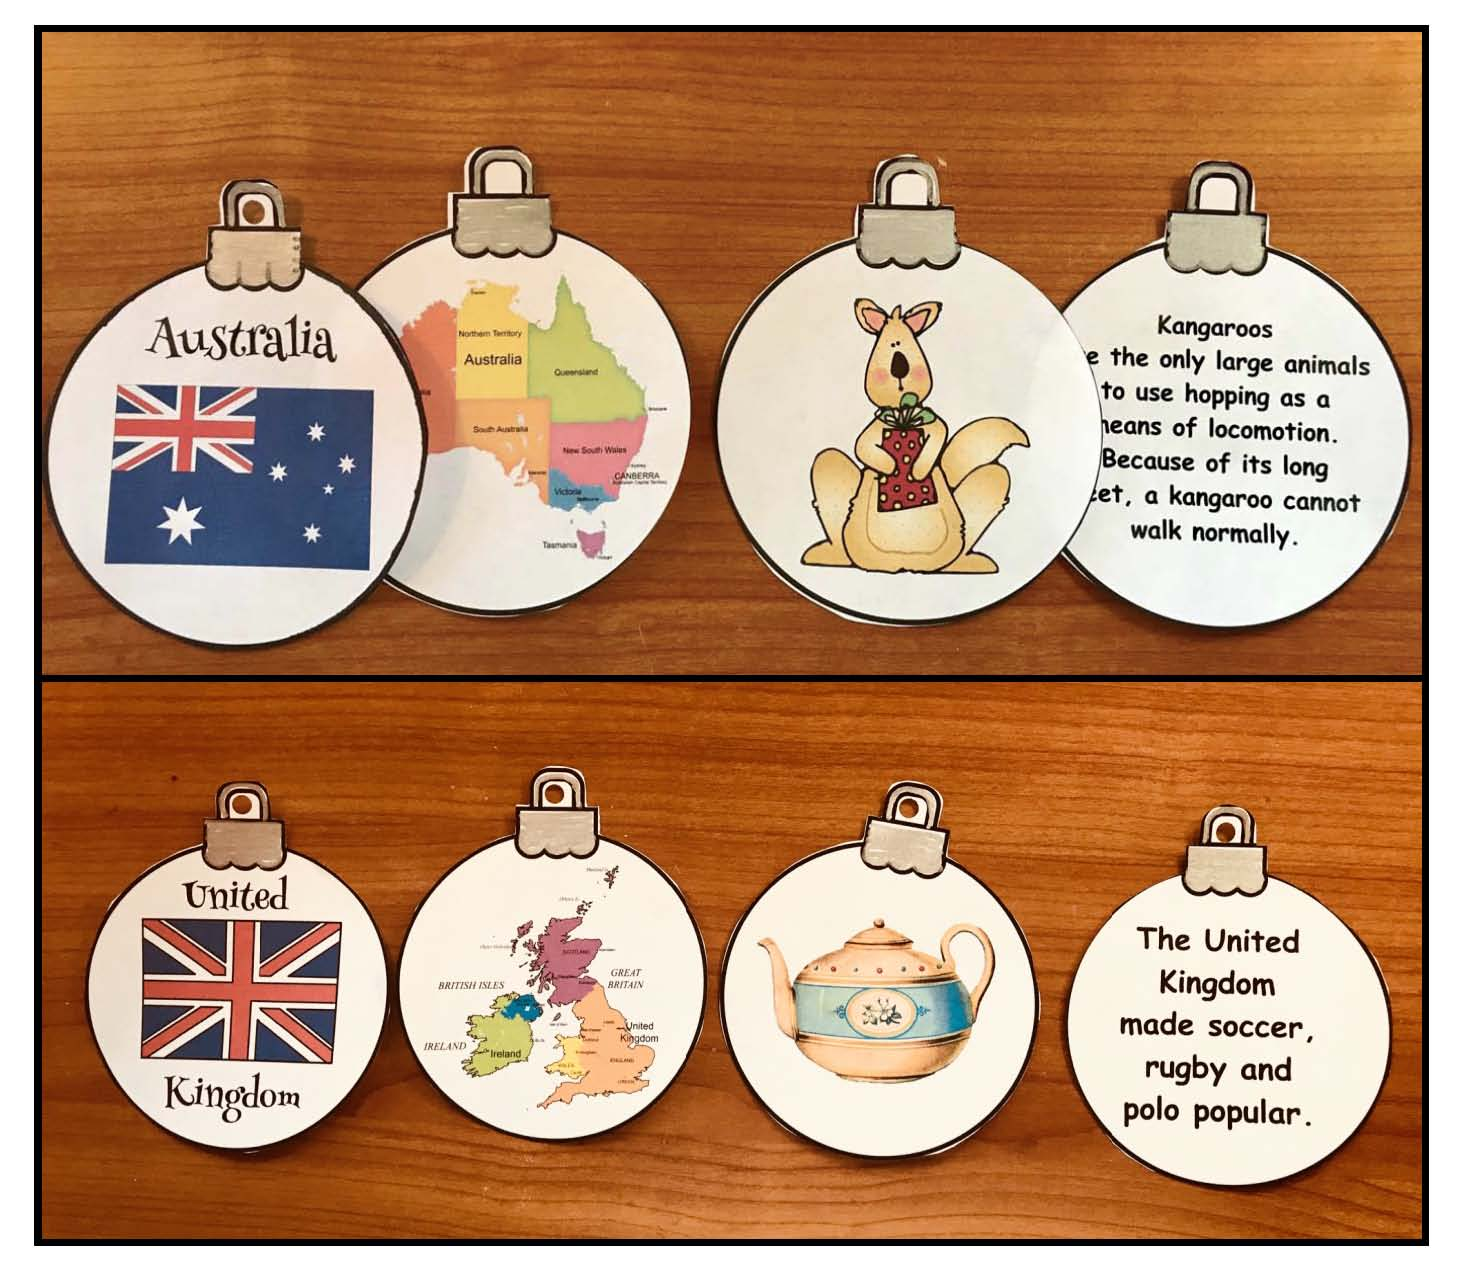 Christmas around the world crafts, Chrismas around the world activities, Christmas around the world ornaments